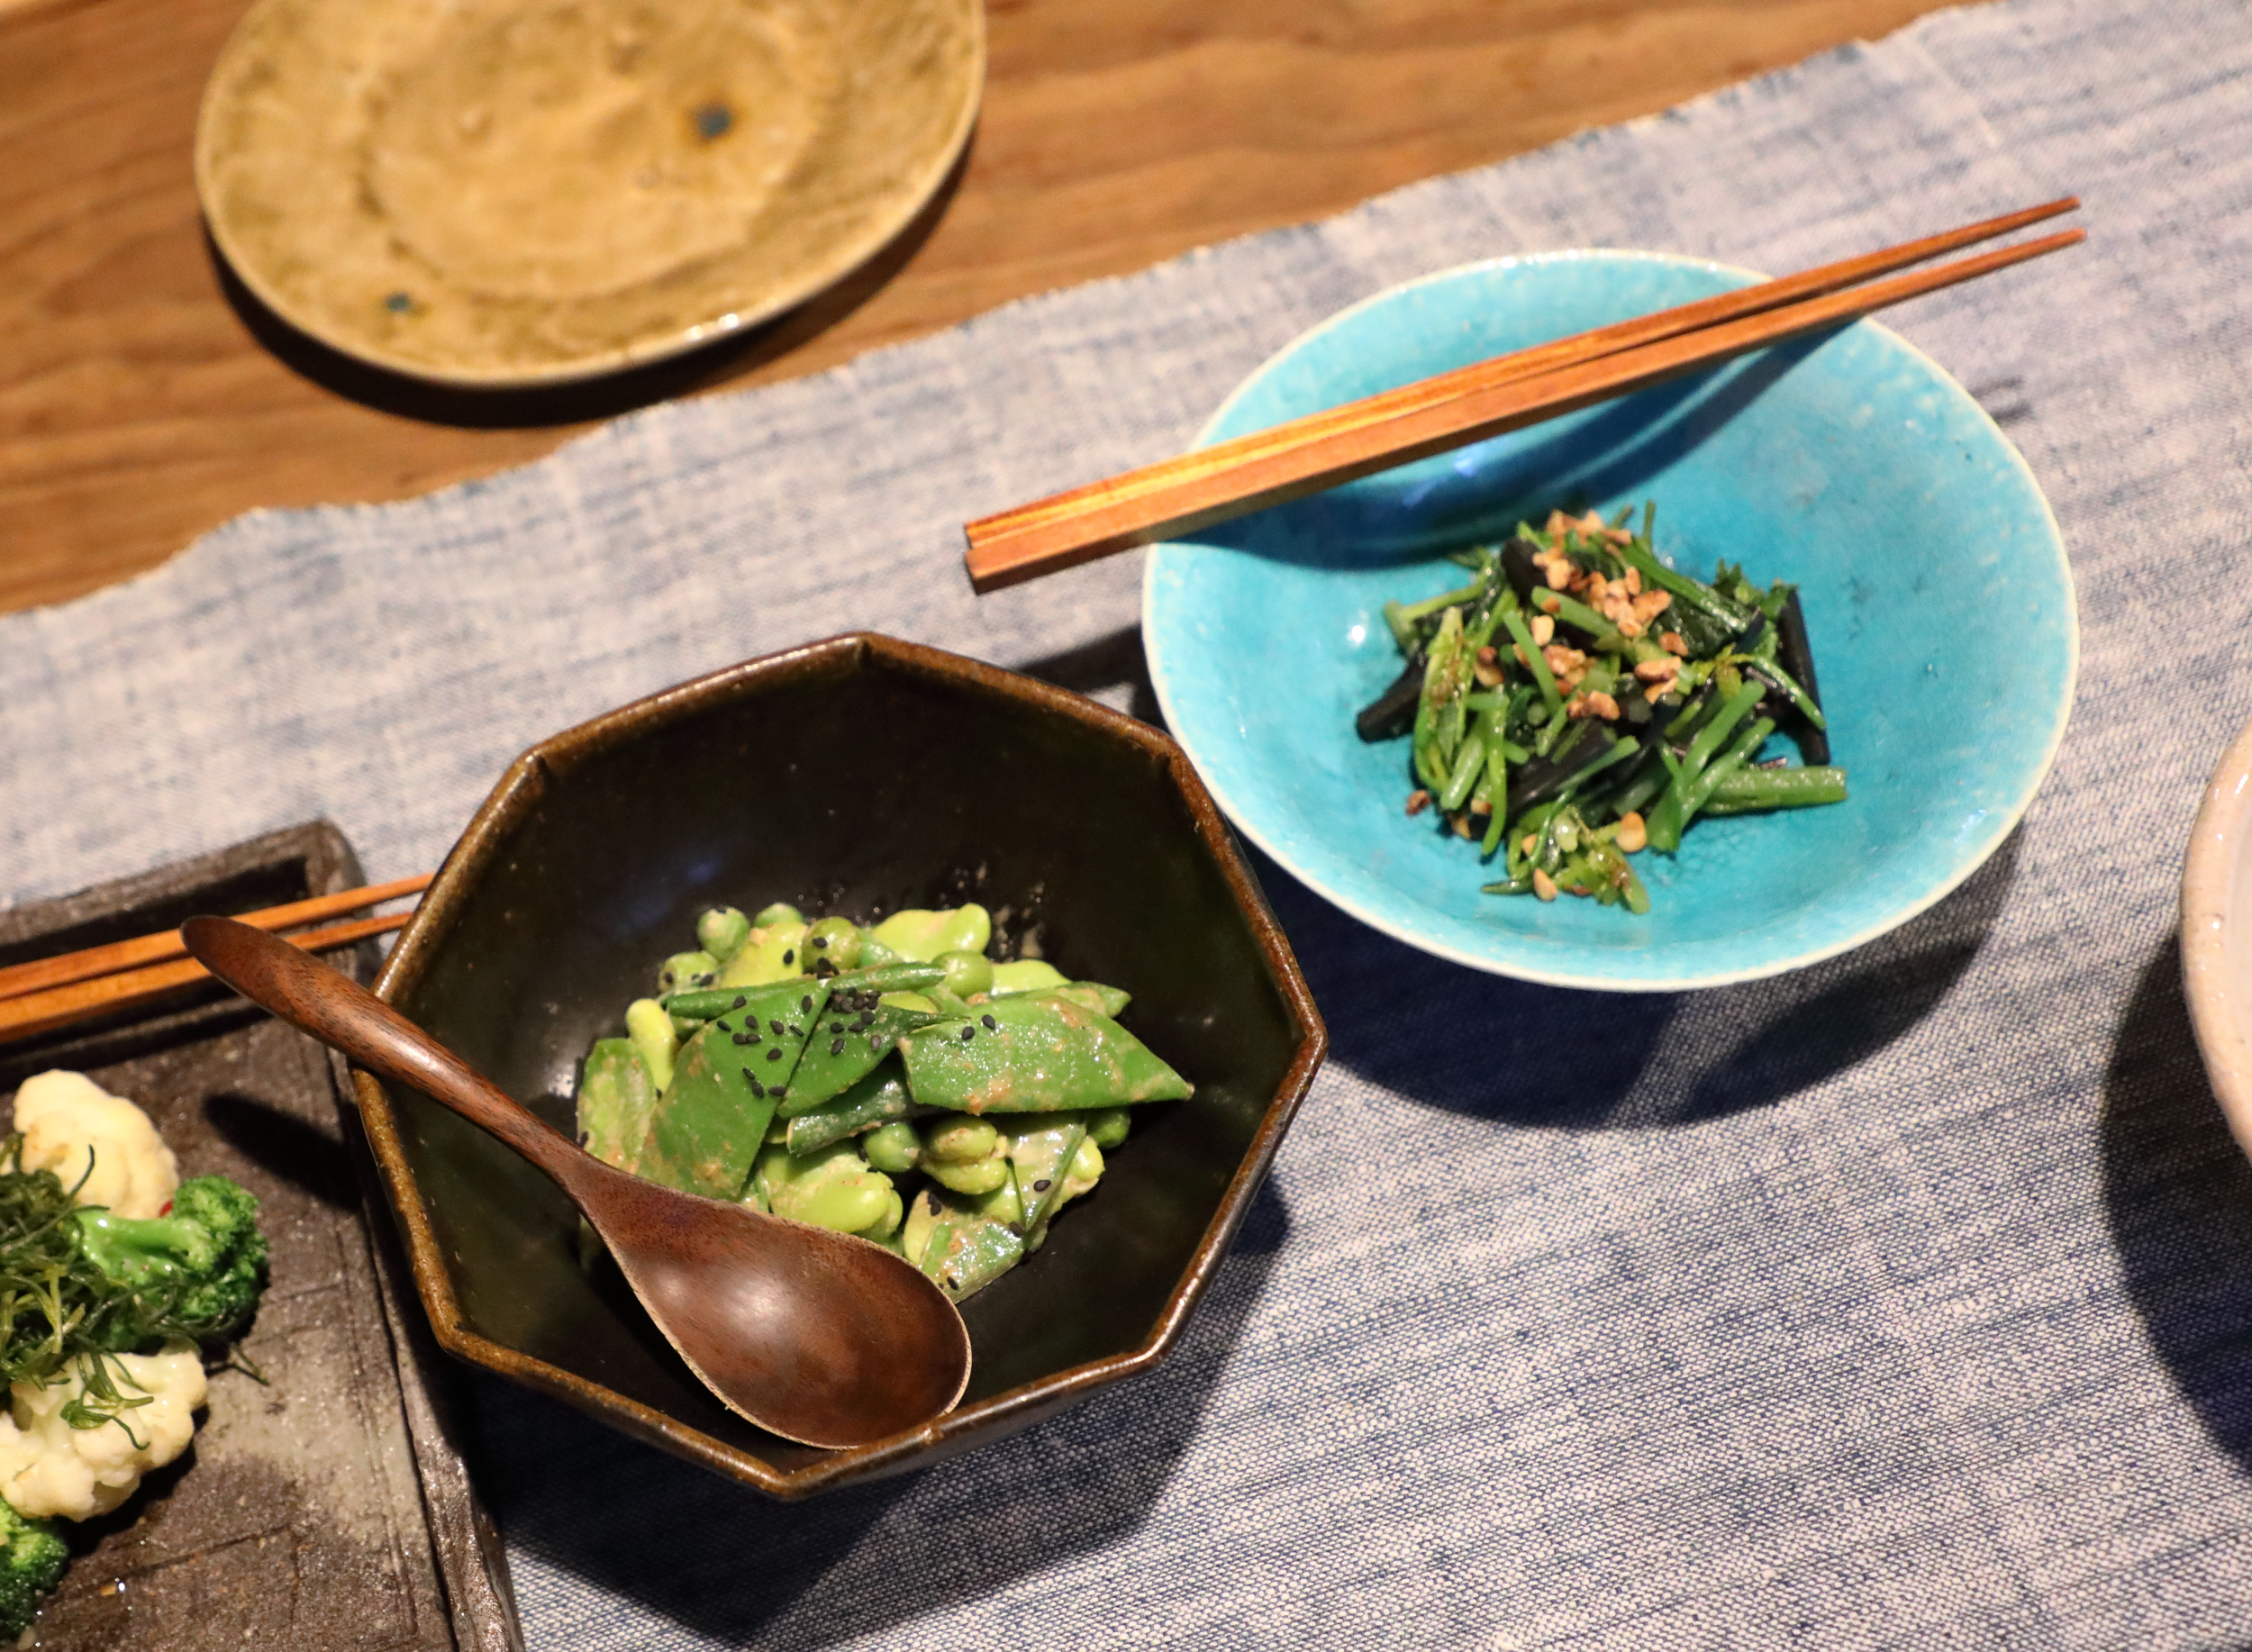 In the top right blue bowl is  horenso ohitashi , which is spinach lightly pickled in sake and soy sauce overnight and topped with toasted sesame seeds. In the bottom left black bowl is  mame goma-ae , a medley of spring beans and peas coated with an earthy sauce made of ground toasted sesame seeds, sake, soy sauce, and sugar.